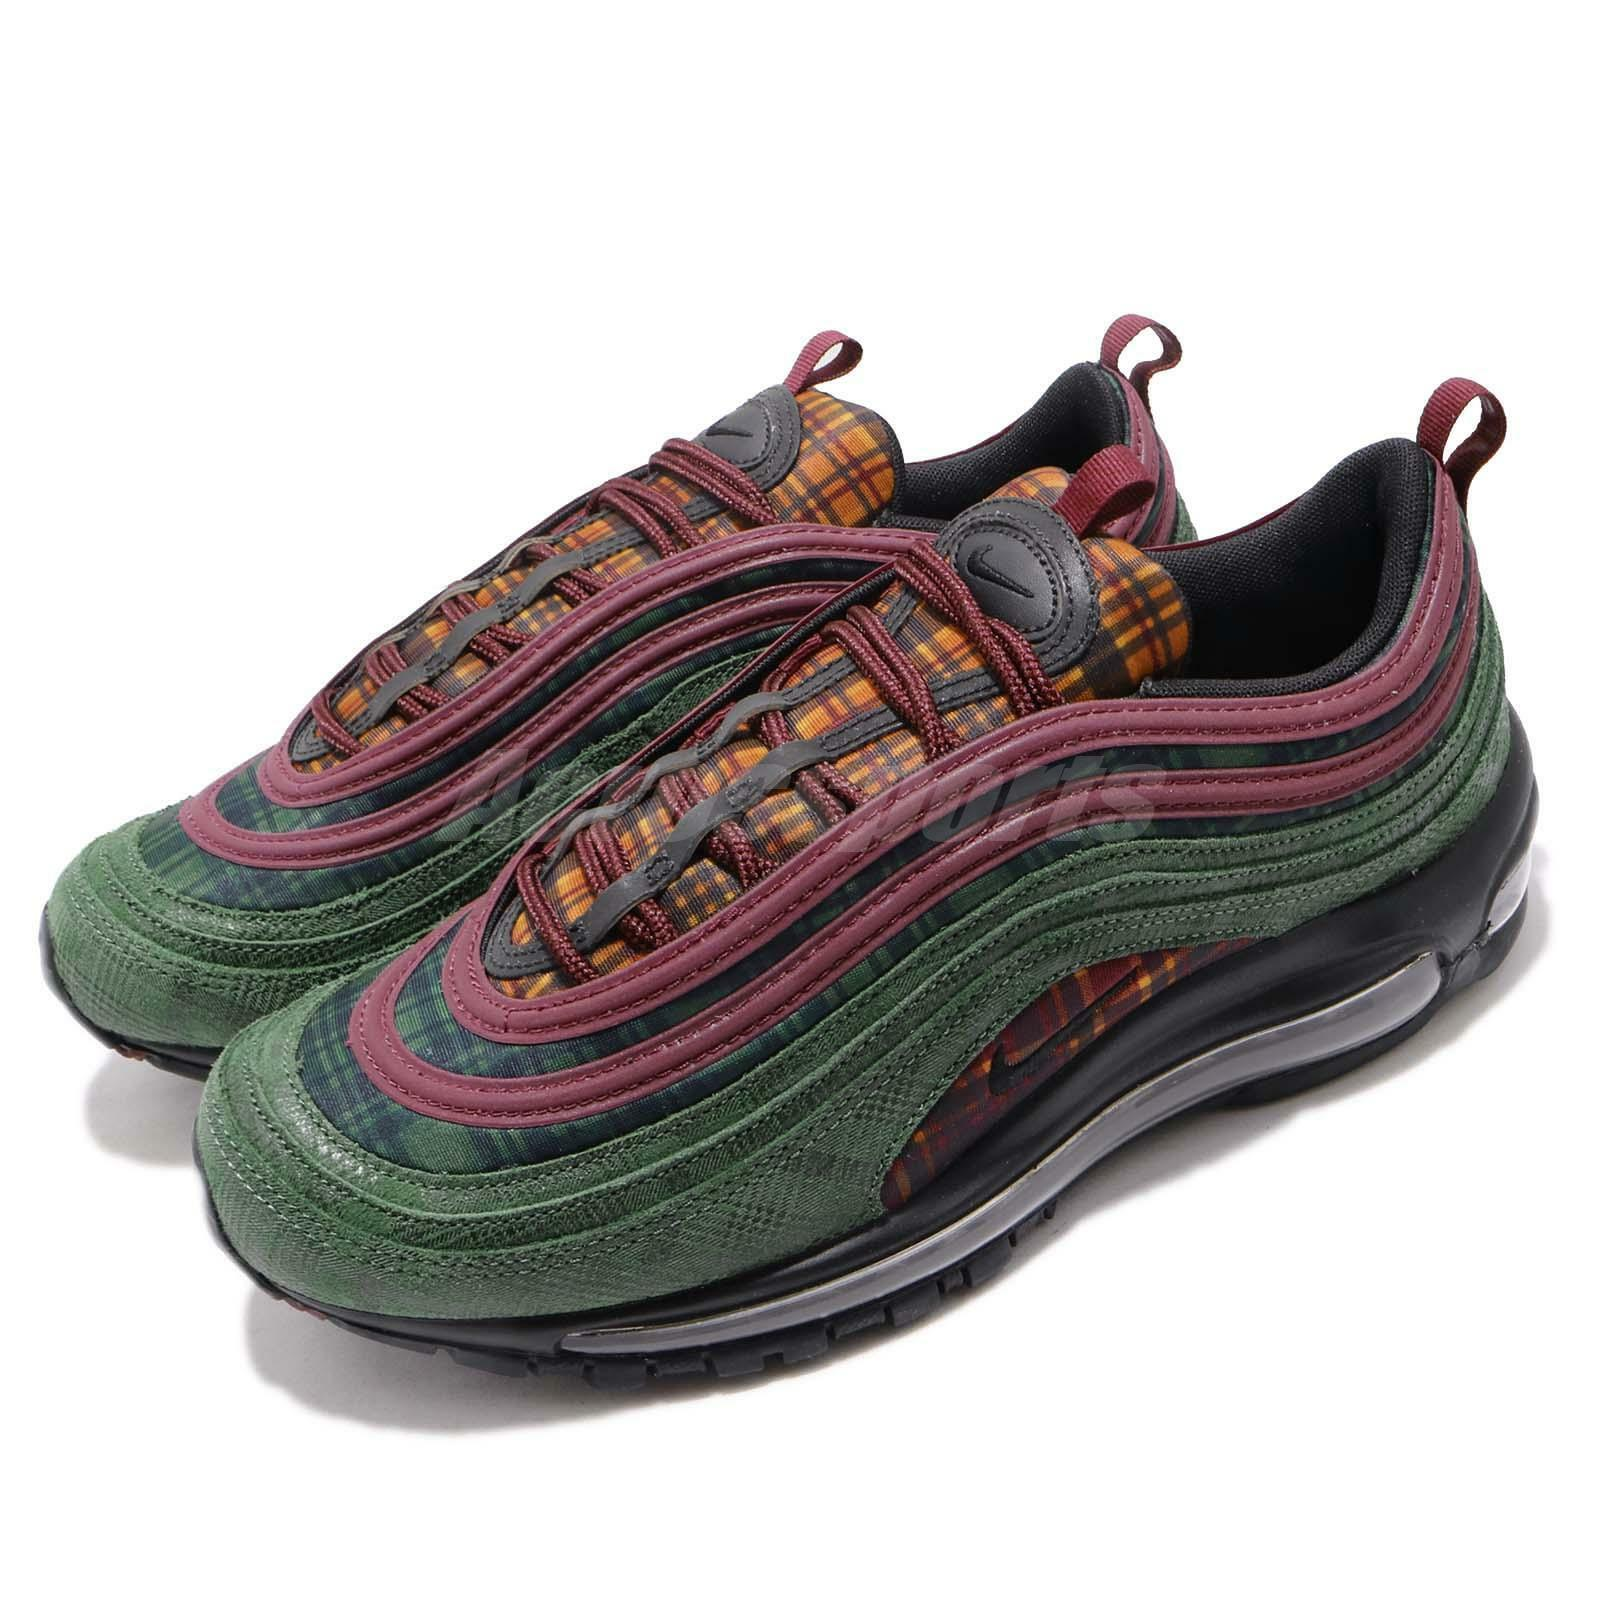 Nike Air Max 97 NRG Jacket Pack Red Midnight Sptuce Men shoes Sneaker AT6145-600